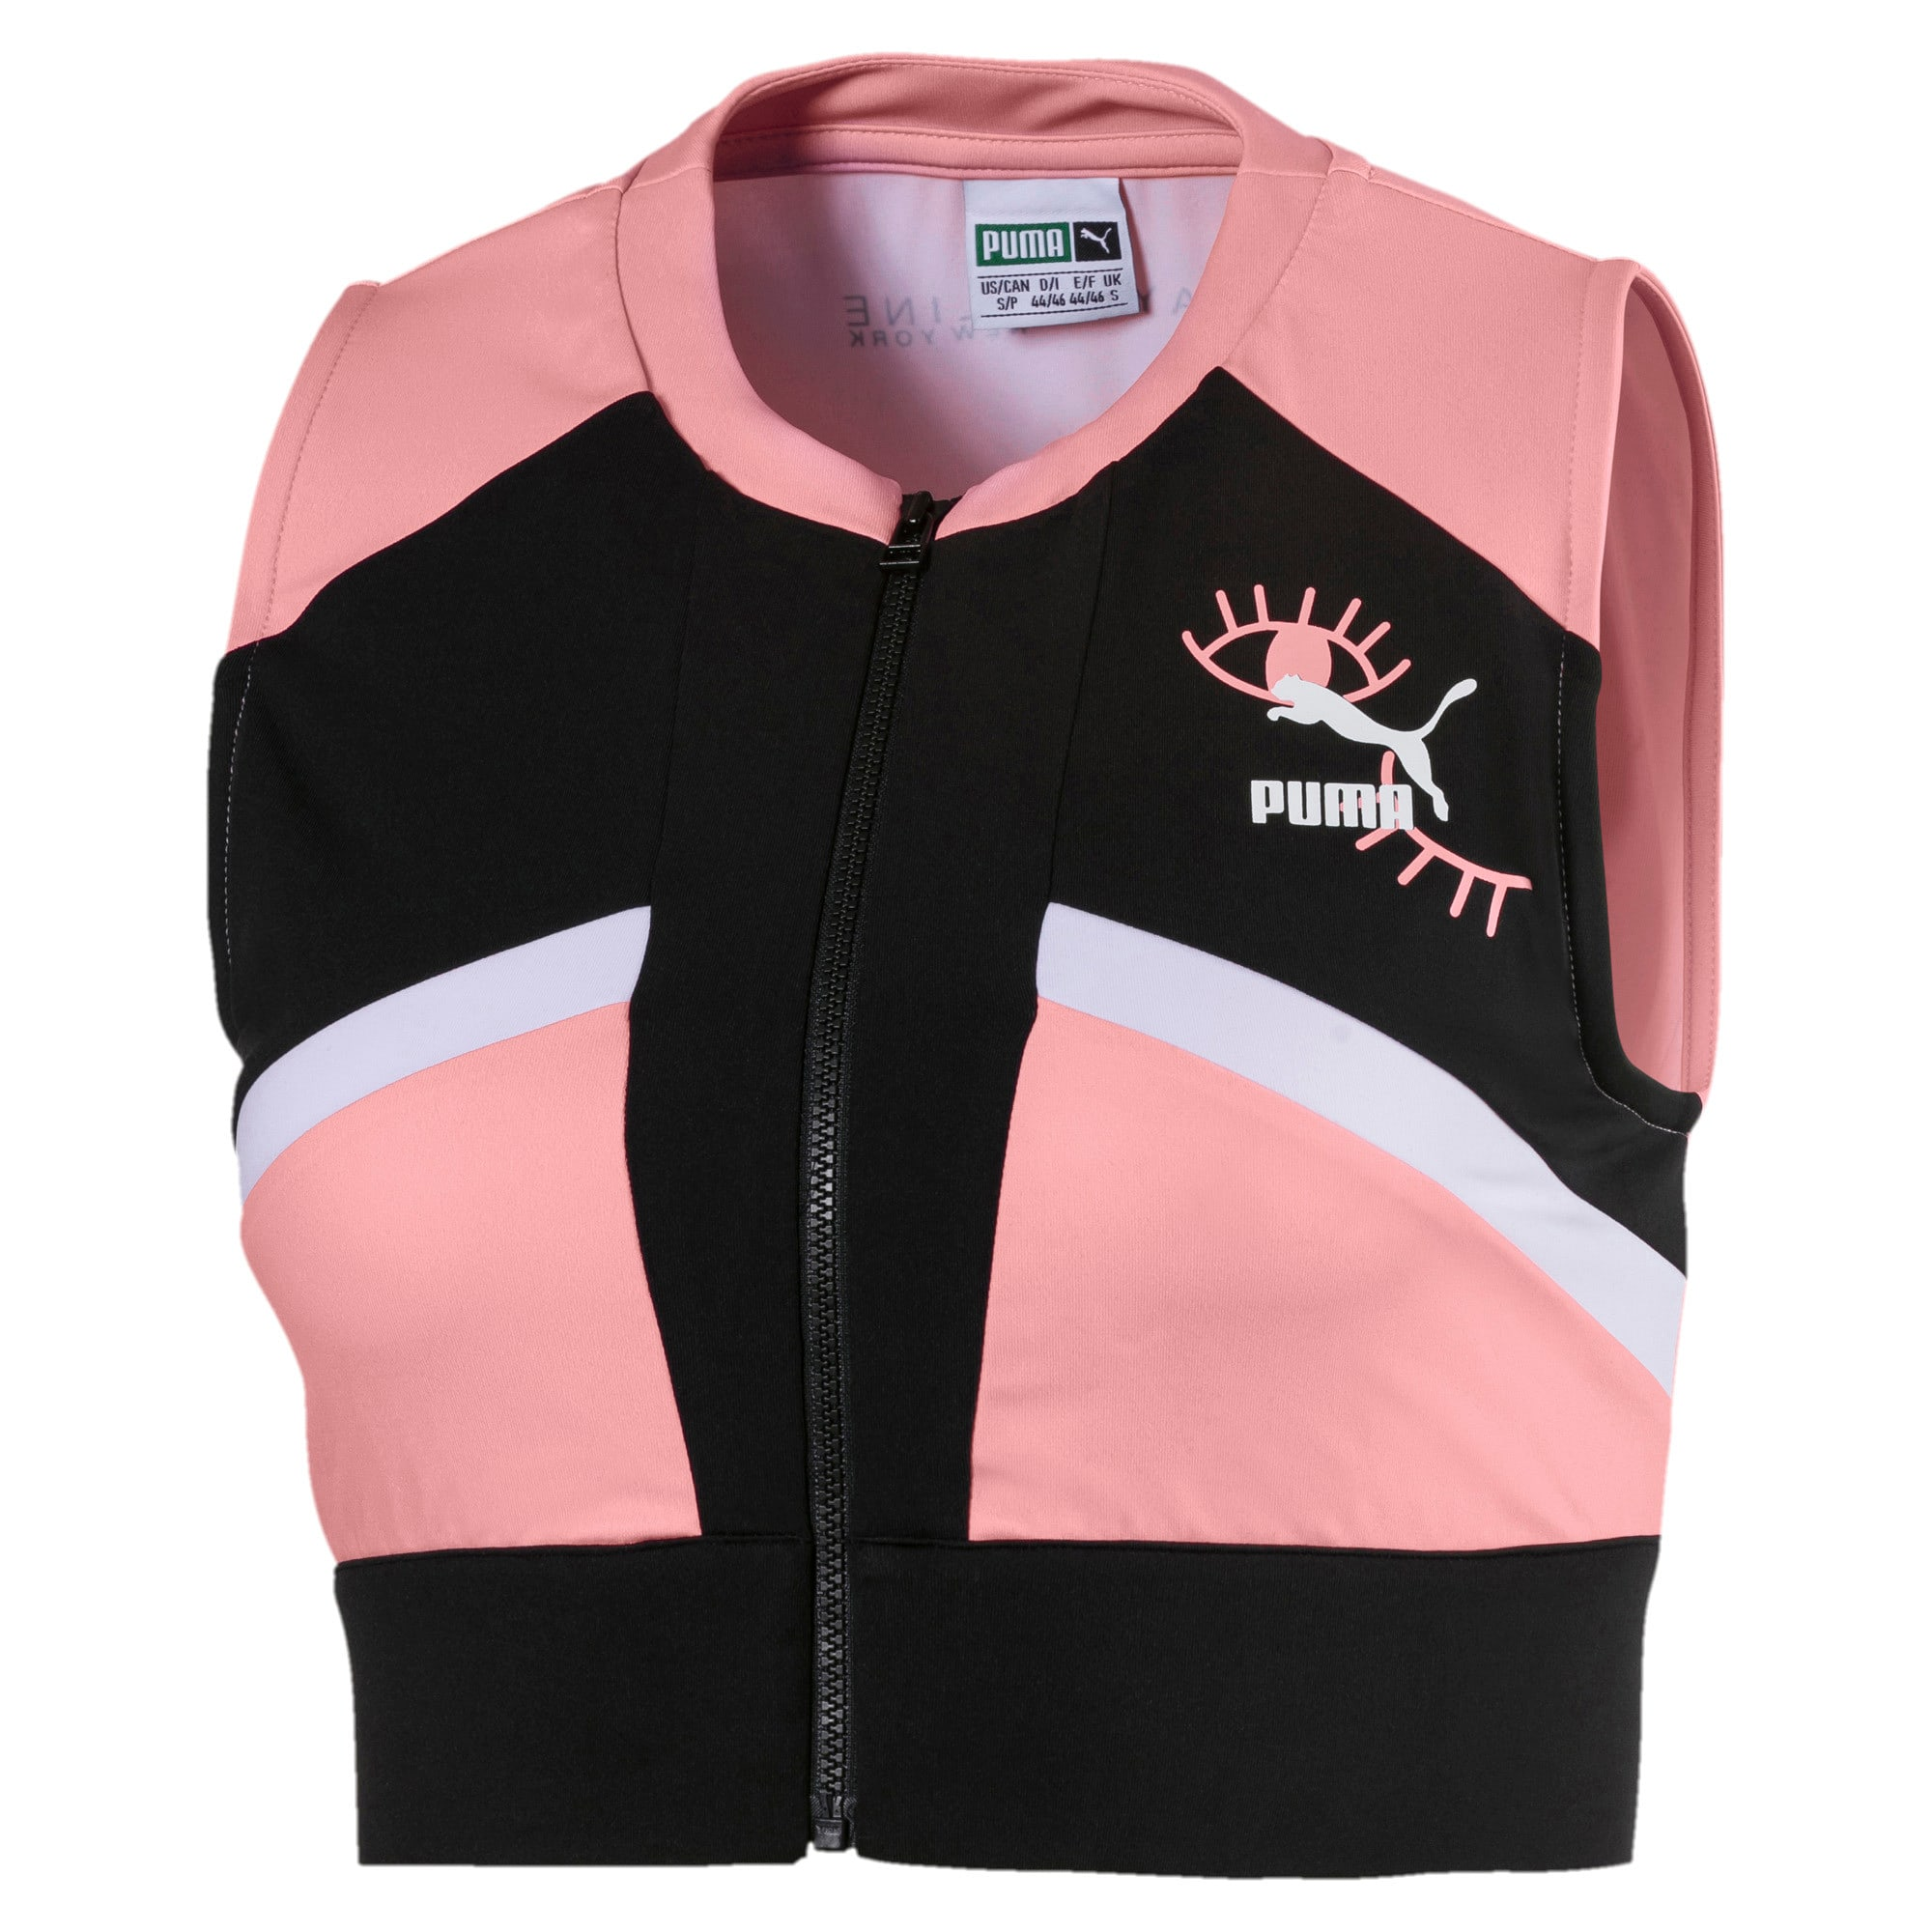 Anteprima 1 di PUMA x MAYBELLINE Women's Crop Top, Powder Pink, medio